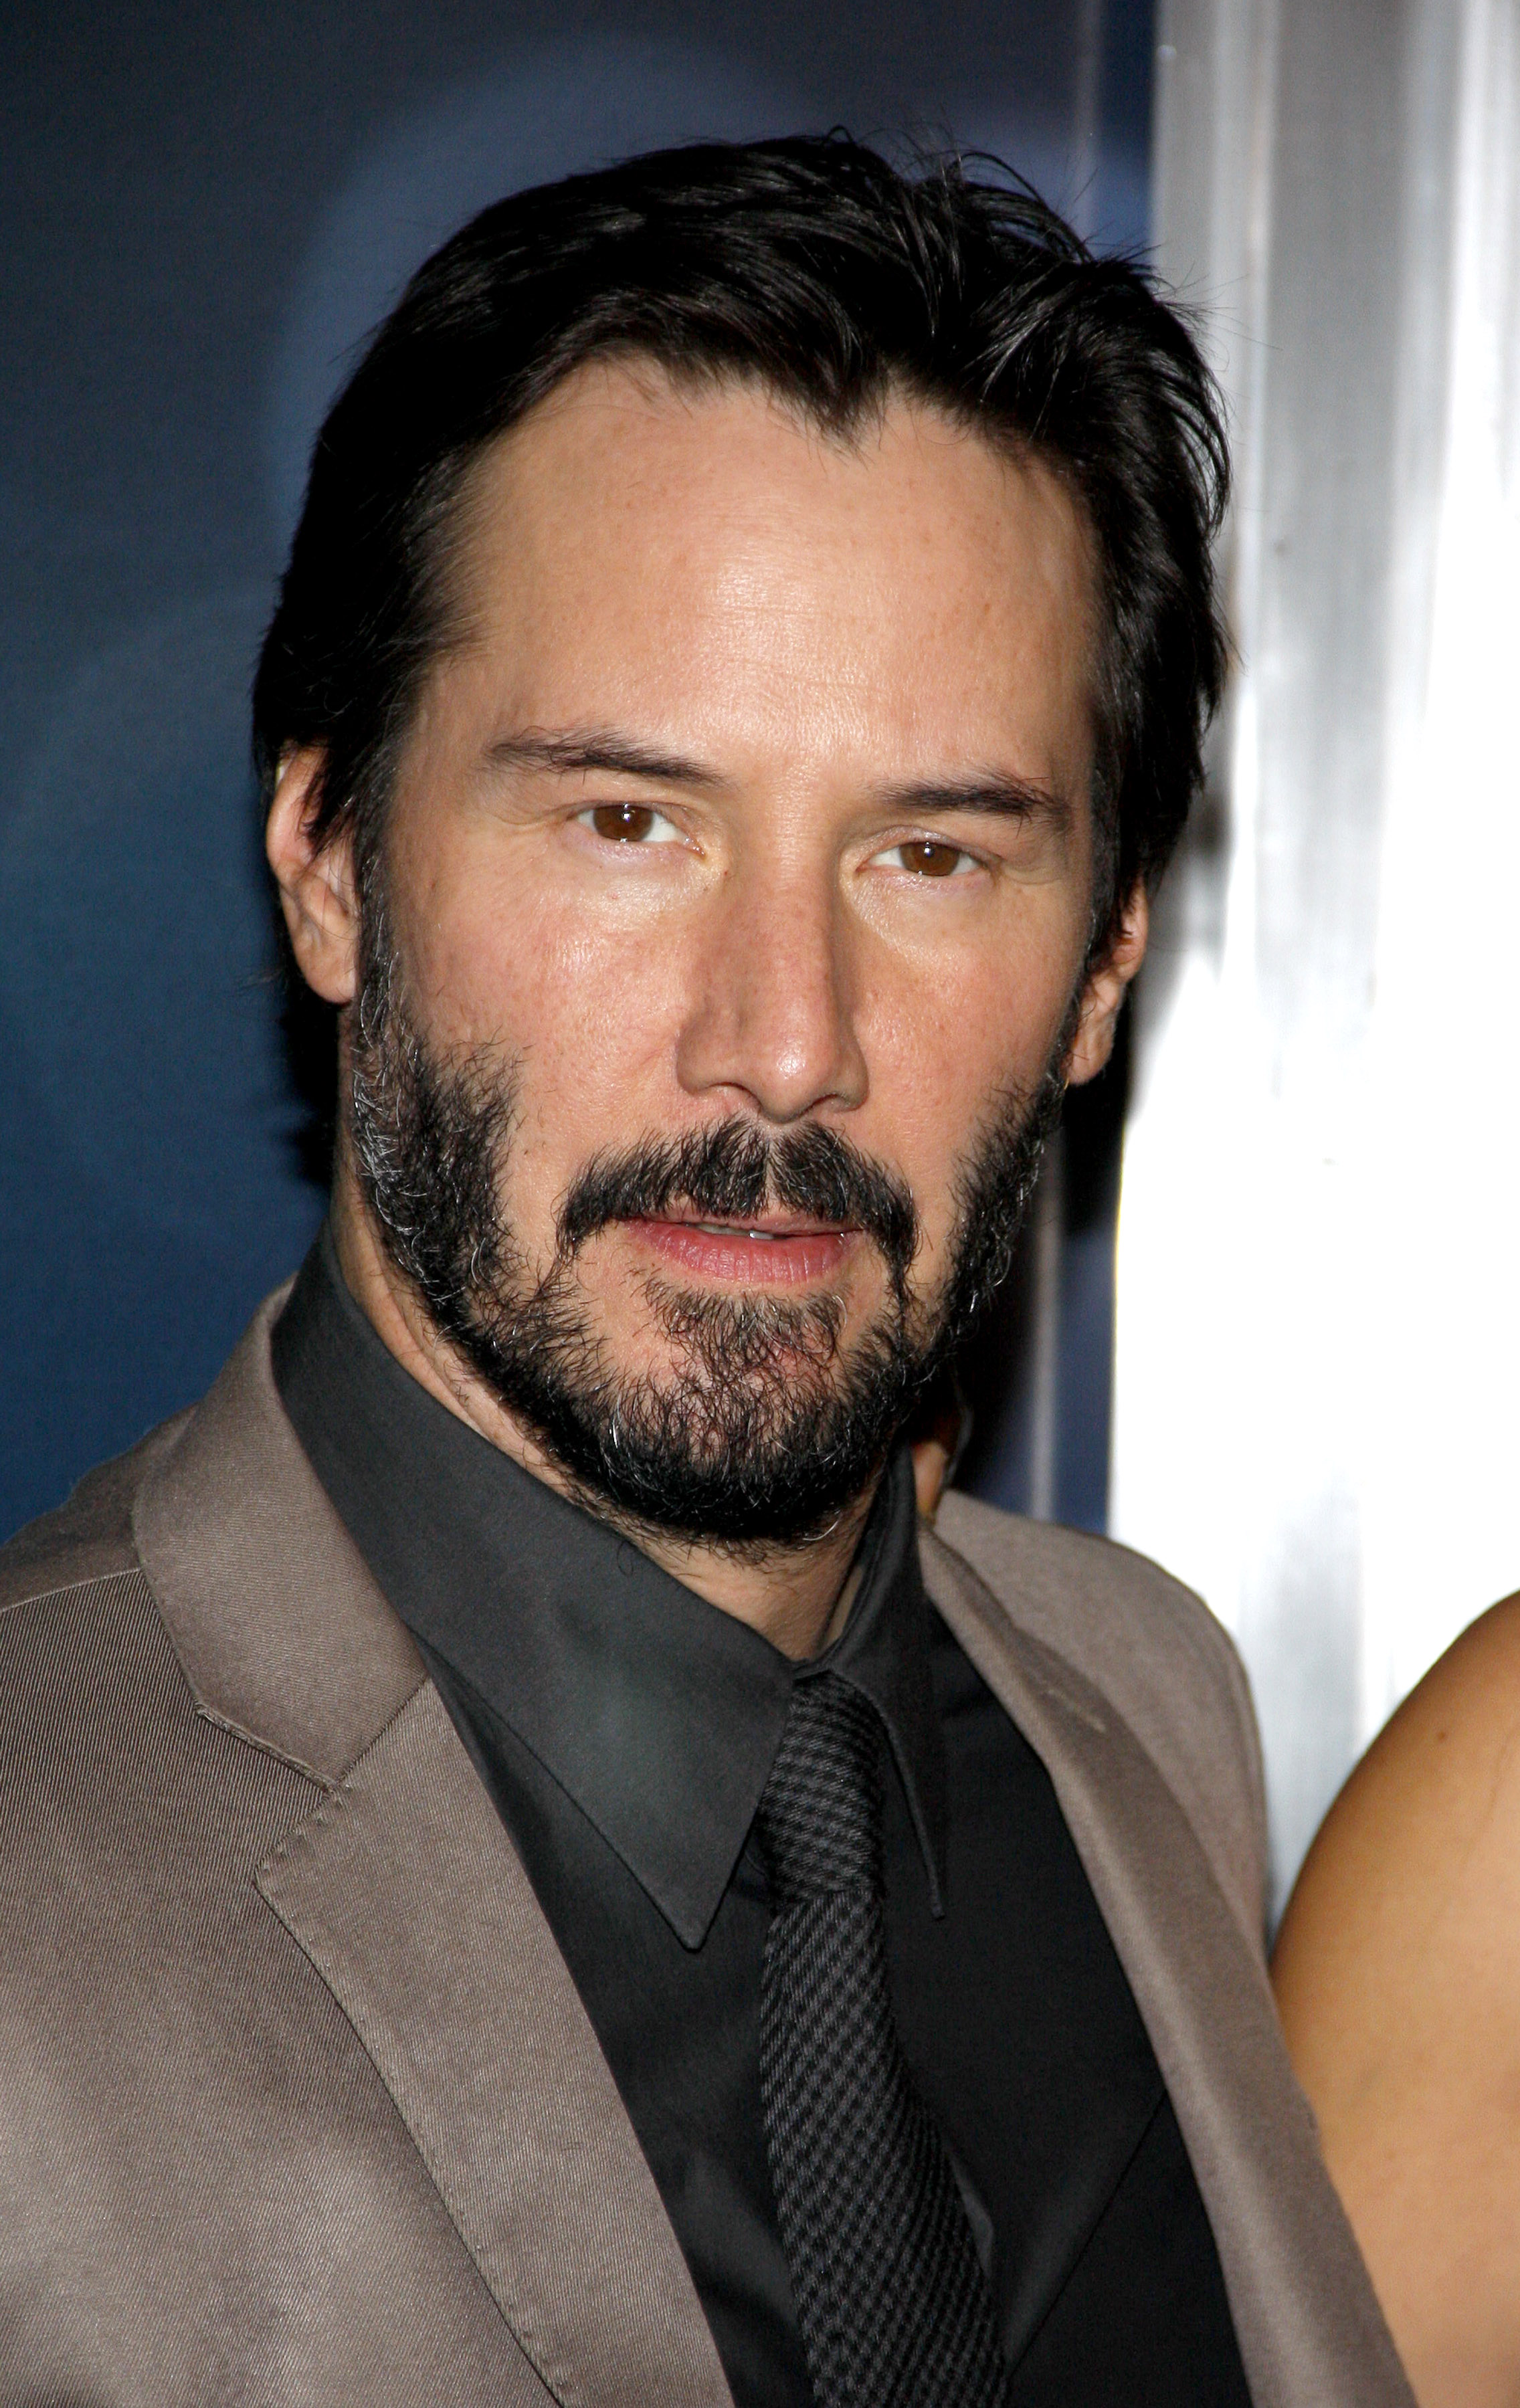 "Keanu Reeves  ""John Wick"" Los Angeles Premiere - Arrivals  - See more at: http://www.prphotos.com/p/DGG-046676/keanu-reeves-at-john-wick-los-angeles-premiere--arrivals.html?&ps=44&x-start=5#sthash.qH3cZ766.dpuf"